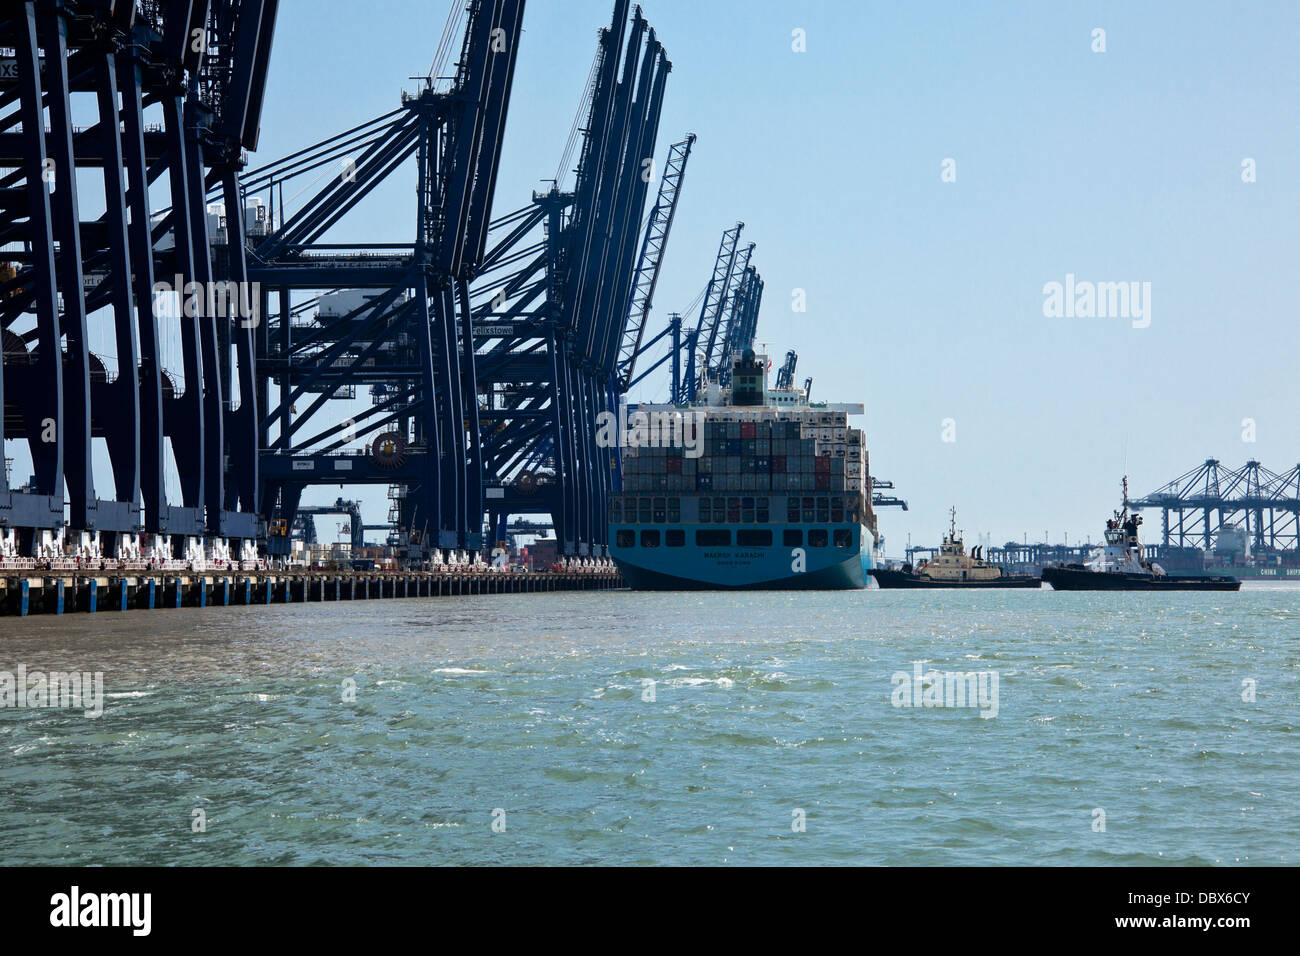 Maersk Karachi about to depart from Felixstowe Container Port, Suffolk, UK - Stock Image